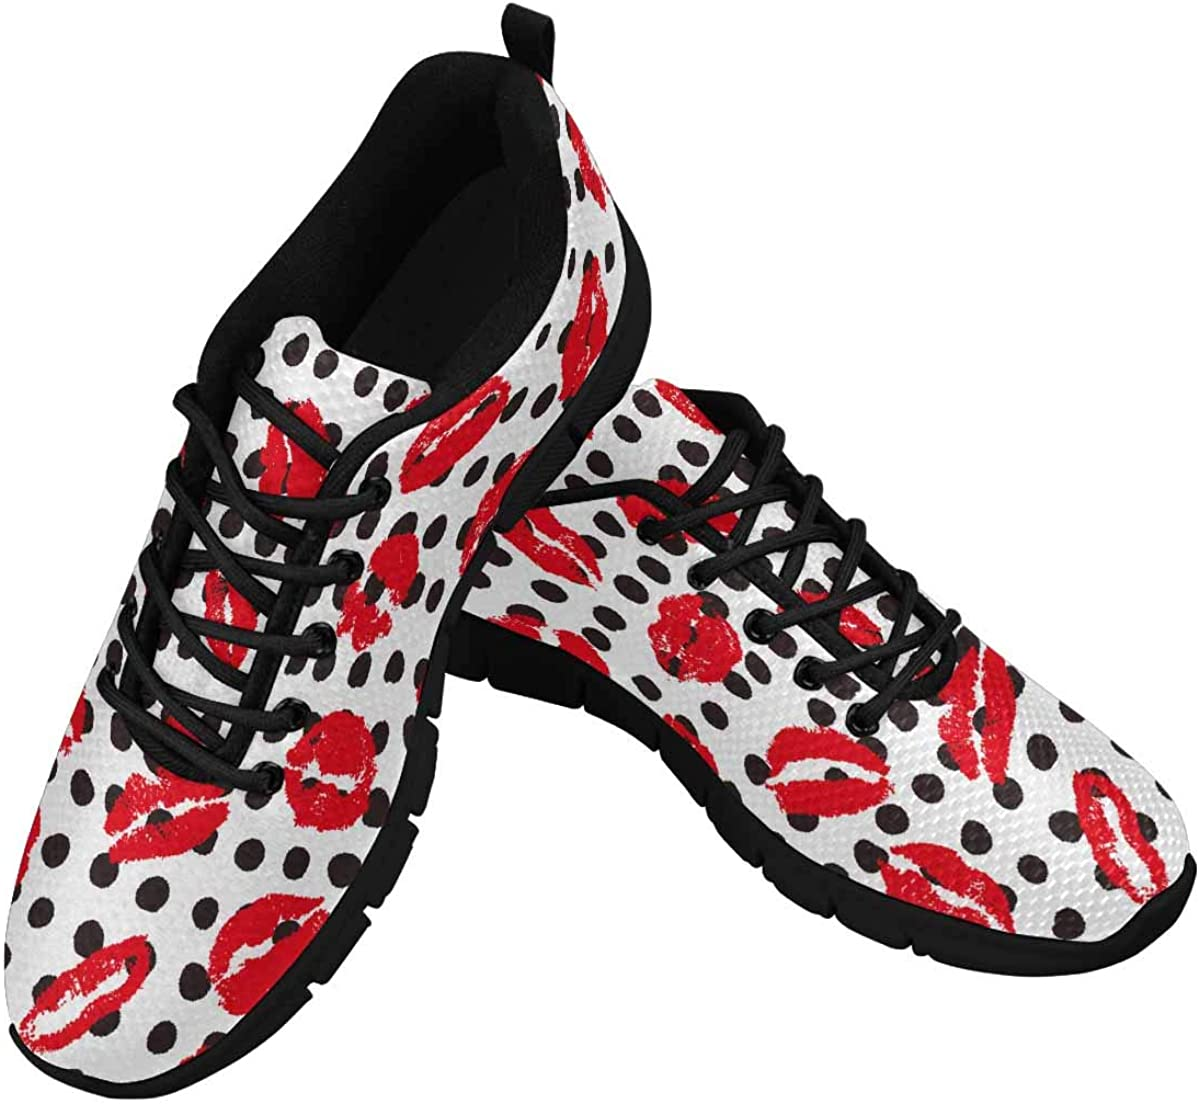 InterestPrint Female Lips Women's Athletic Mesh Breathable Casual Sneakers Fashion Tennis Shoes